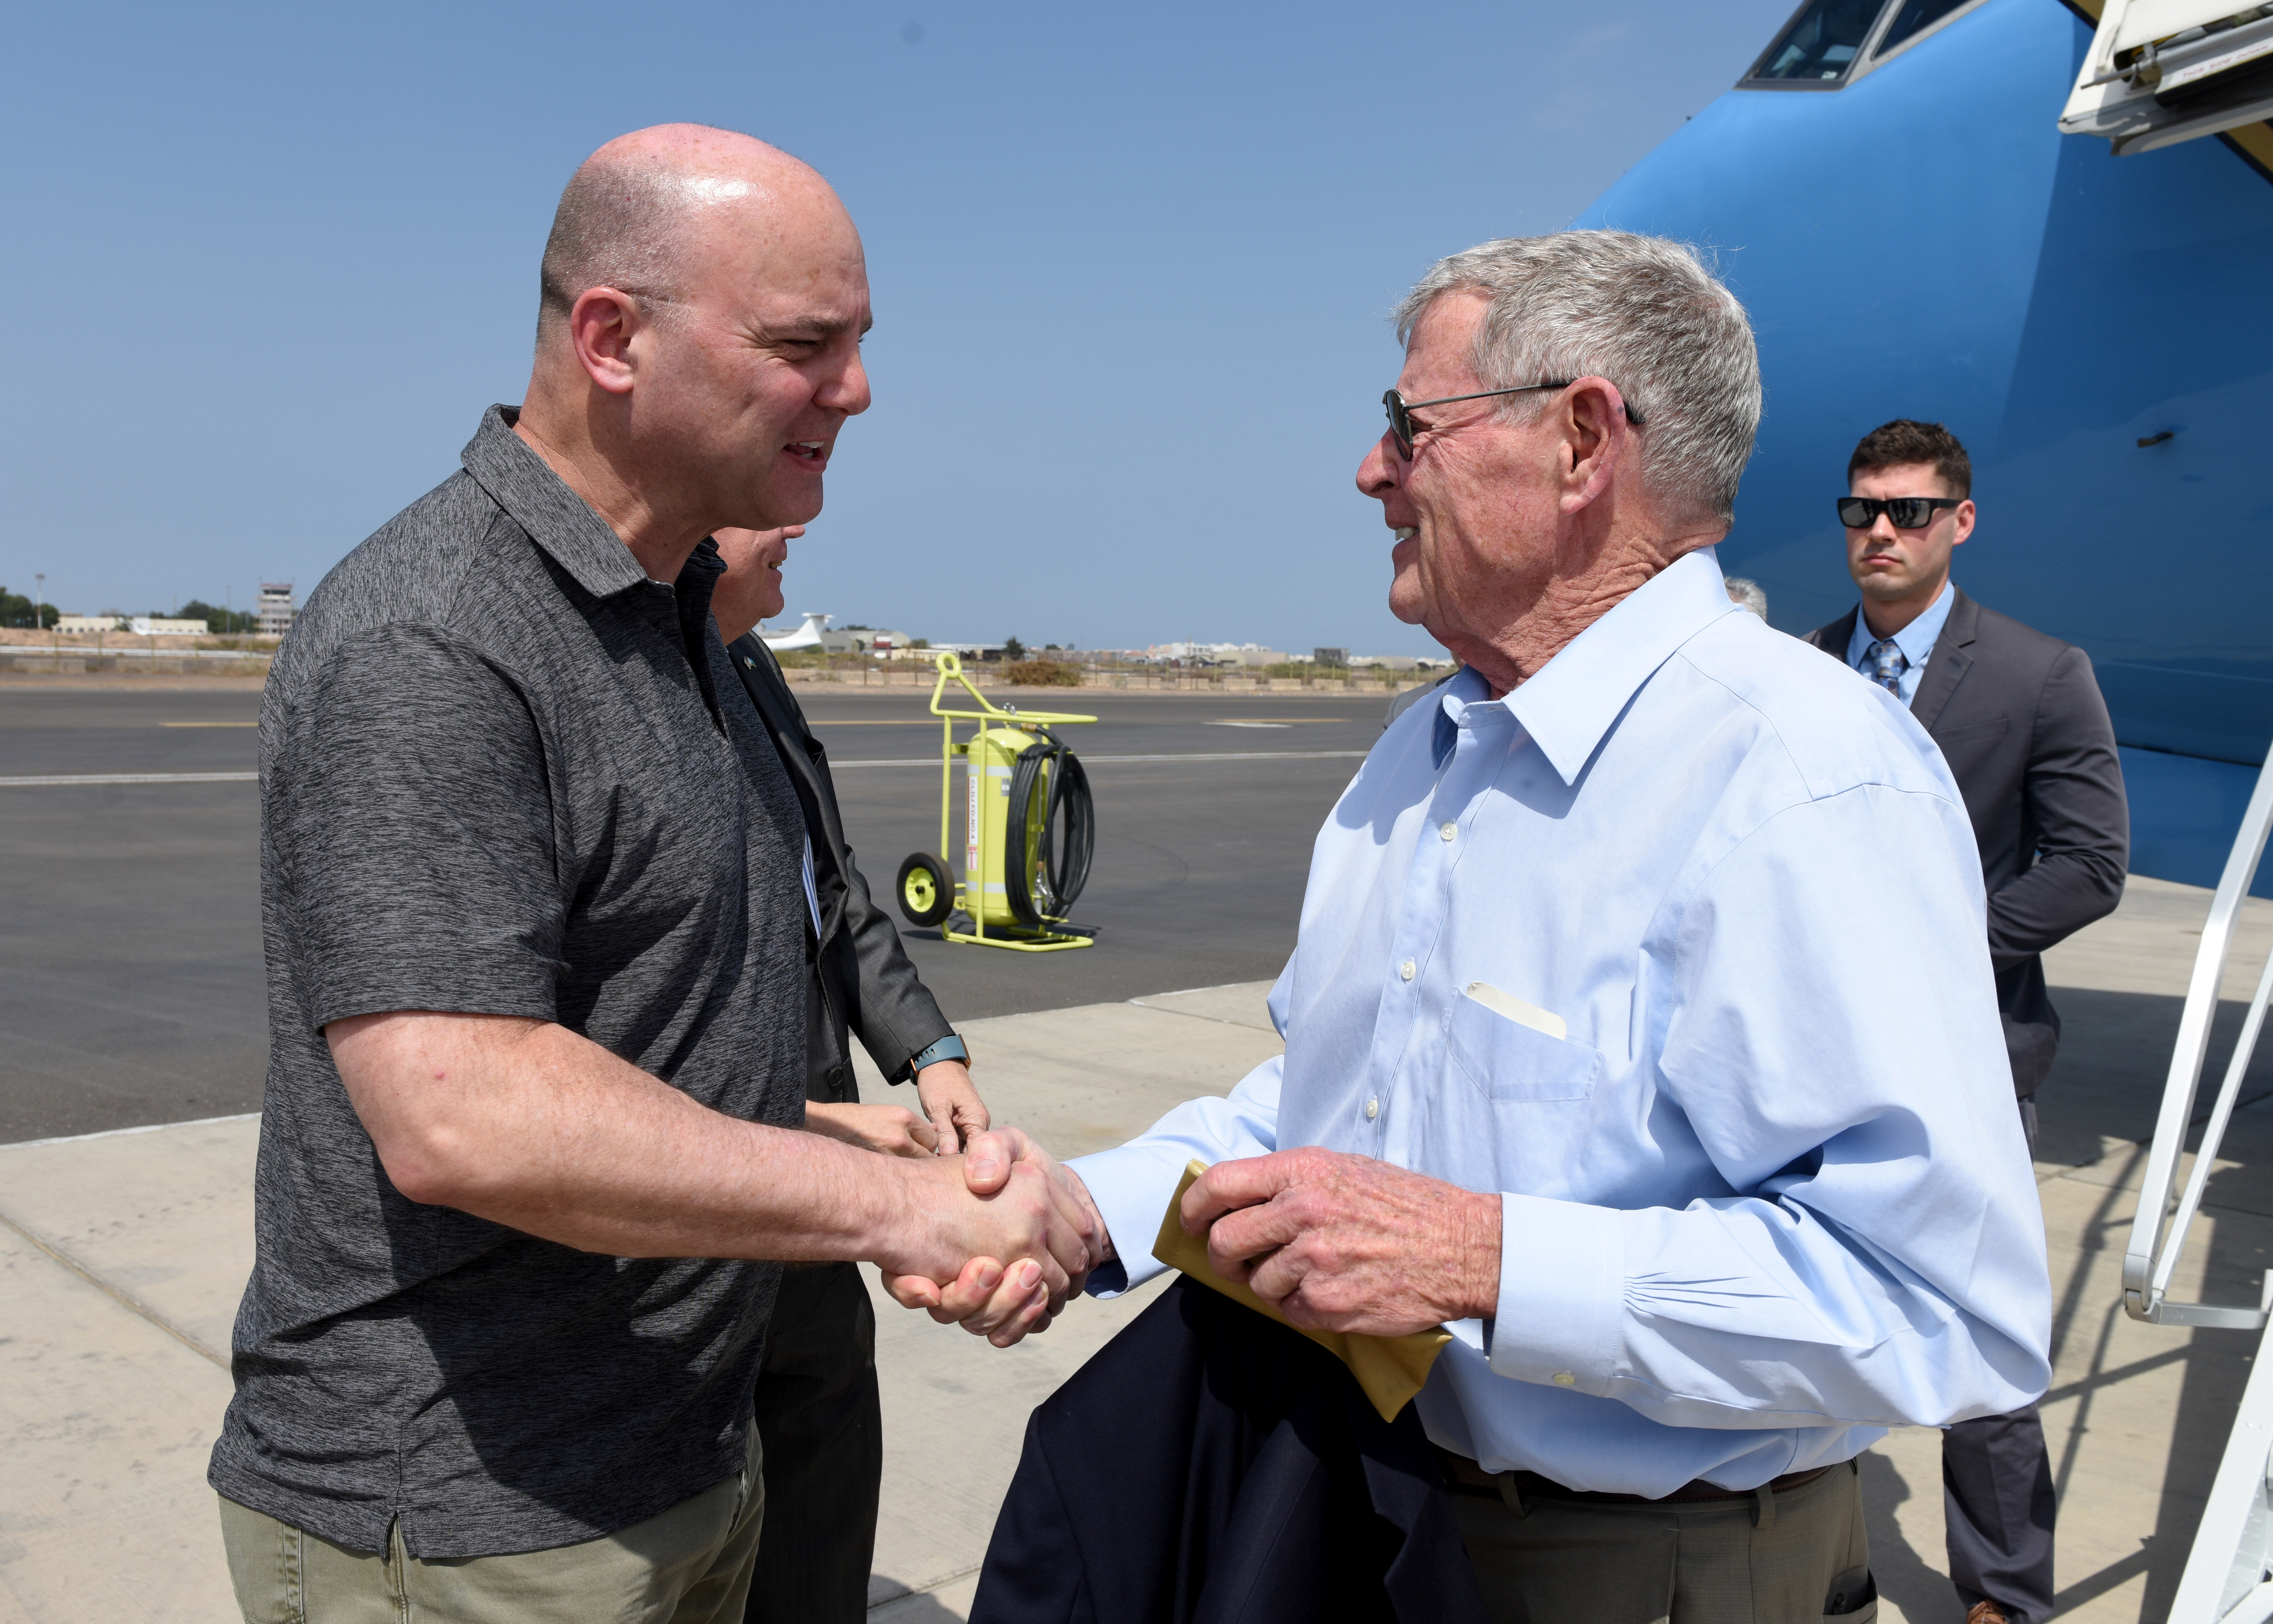 U.S. Air Force Brig. Gen. James R. Kriesel, deputy commanding general of Combined Joint Task Force-Horn of Africa, greets U.S. Sen. James Inhofe (R-Okla.) during a visit to Camp Lemonnier, Djibouti, Feb. 20, 2019. Inhofe visited Djibouti to meet with U.S. forces and embassy officials to gain an insight on the current posture within the combined joint operations area. (U.S. Air Force Photo by Staff Sgt. Franklin R. Ramos)